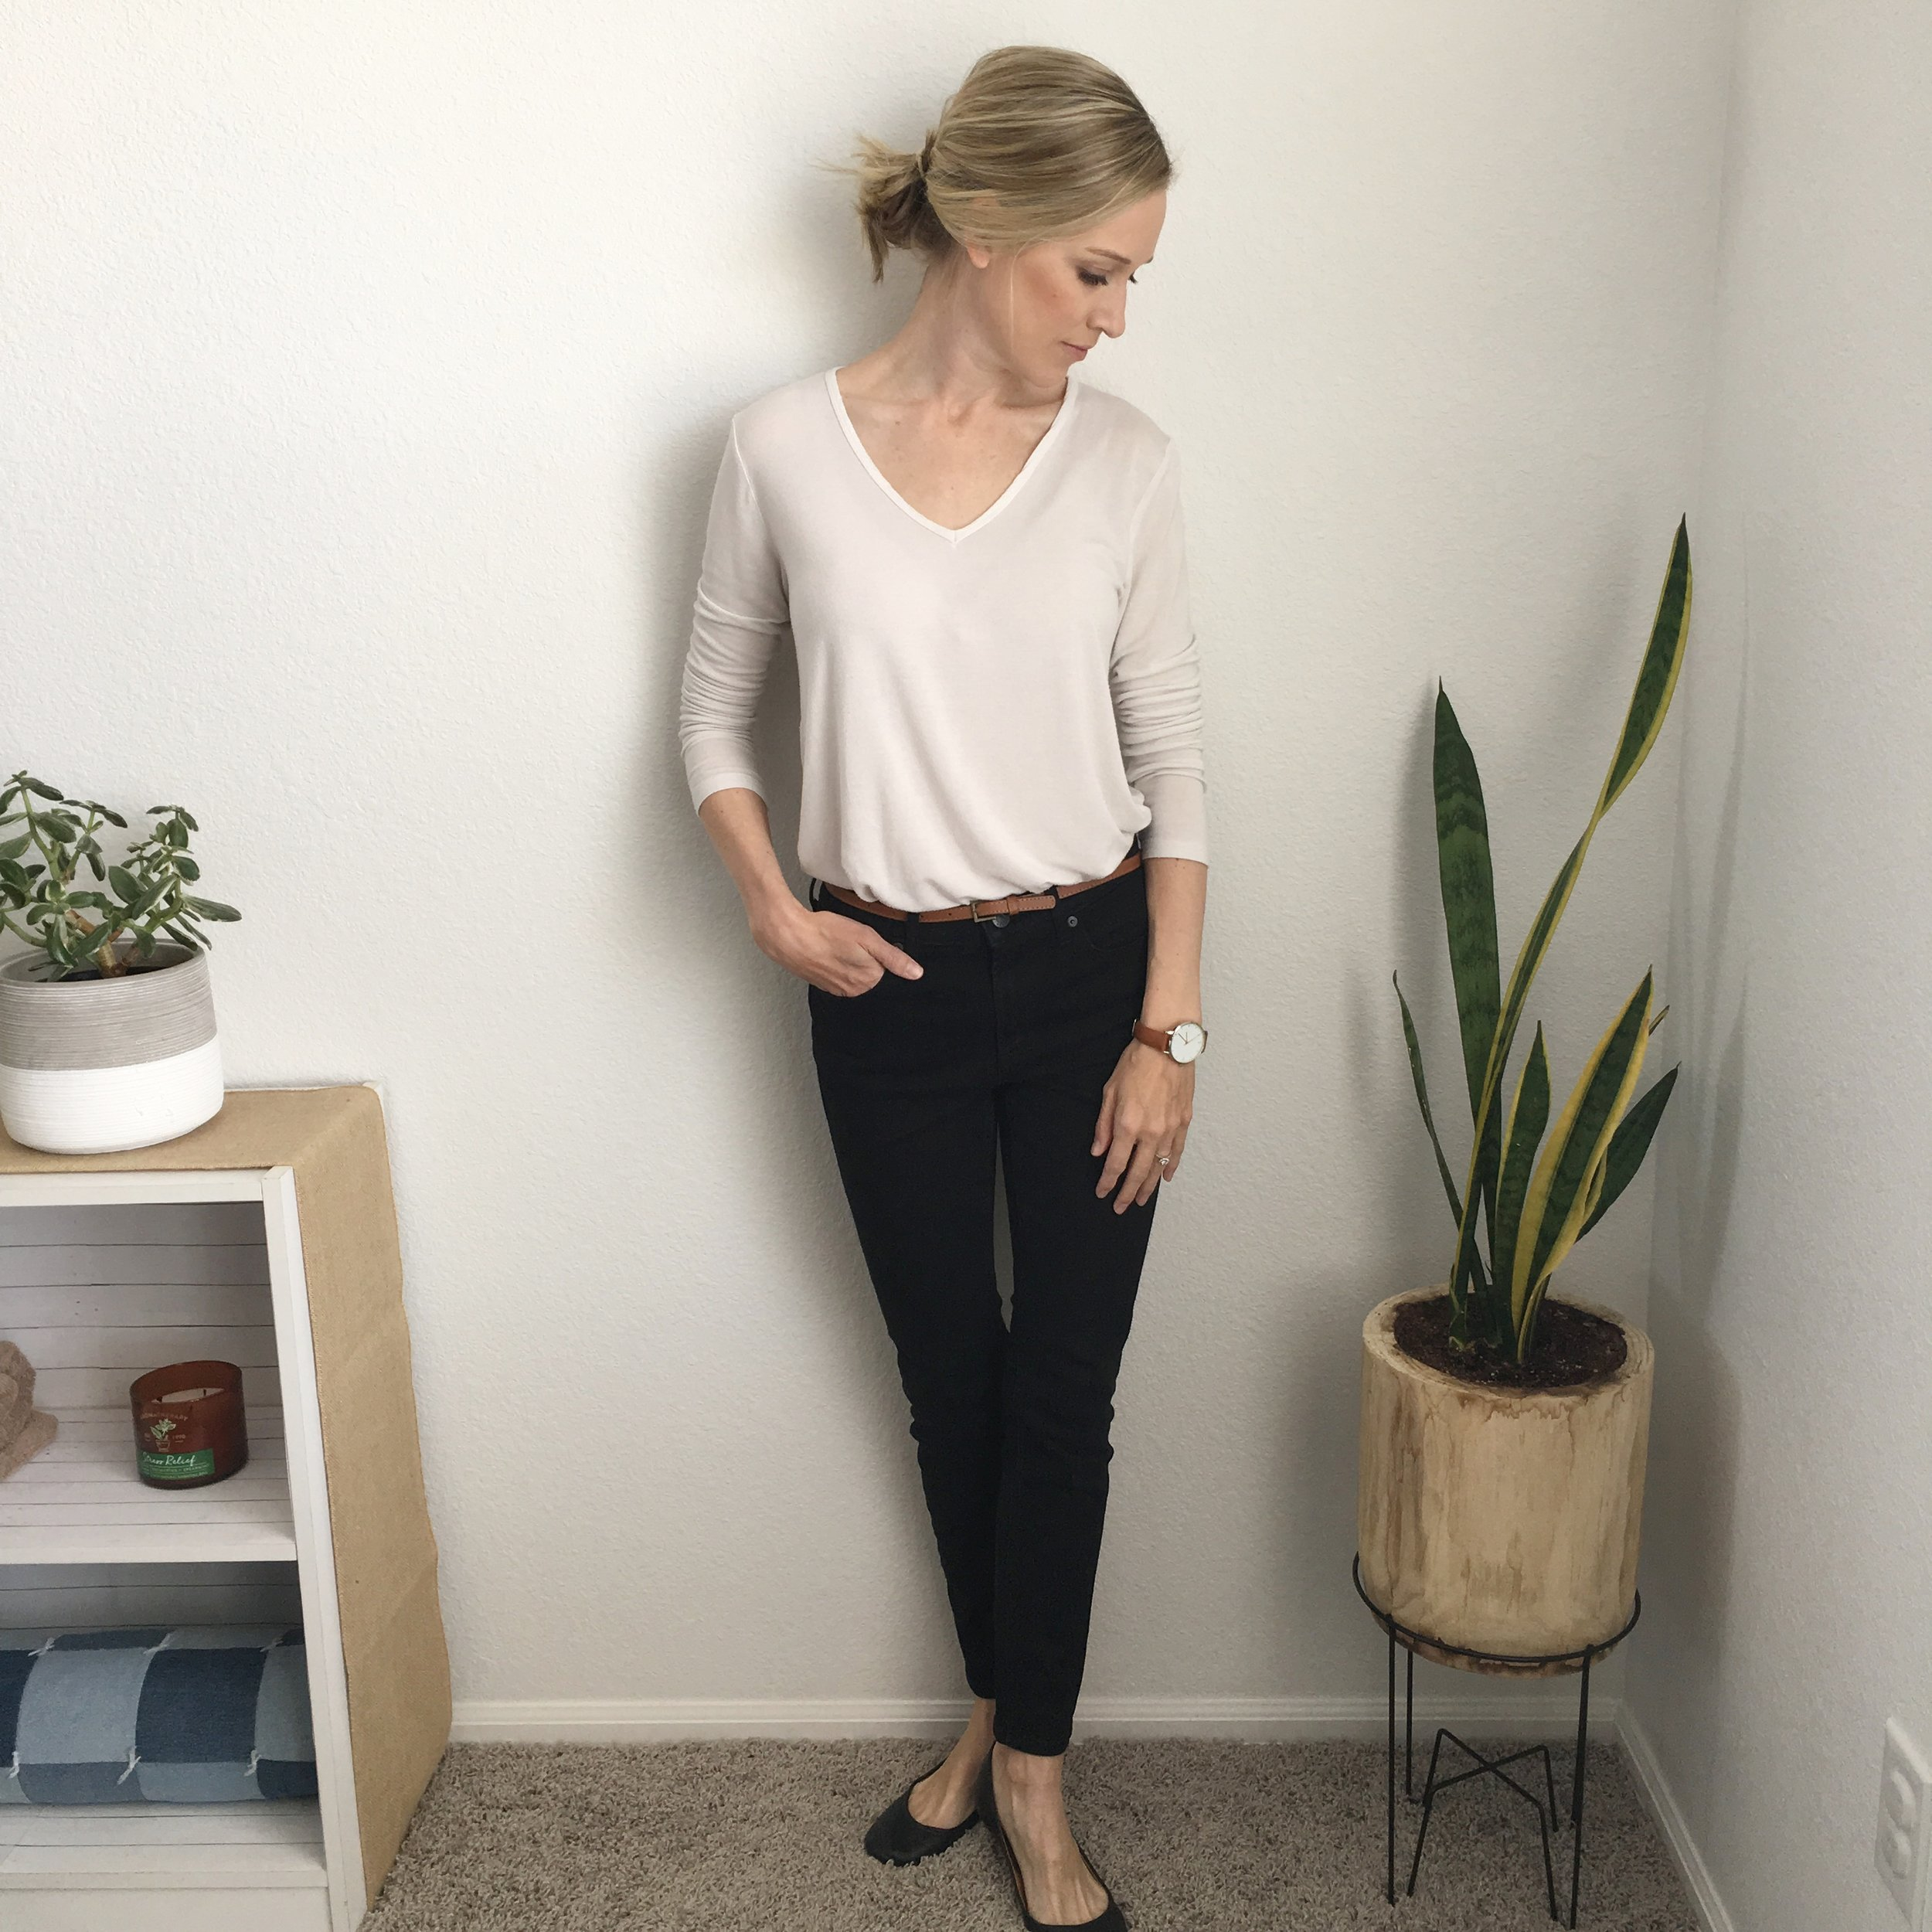 Outfit 3: 10x10 Style Challenge with ethical clothing